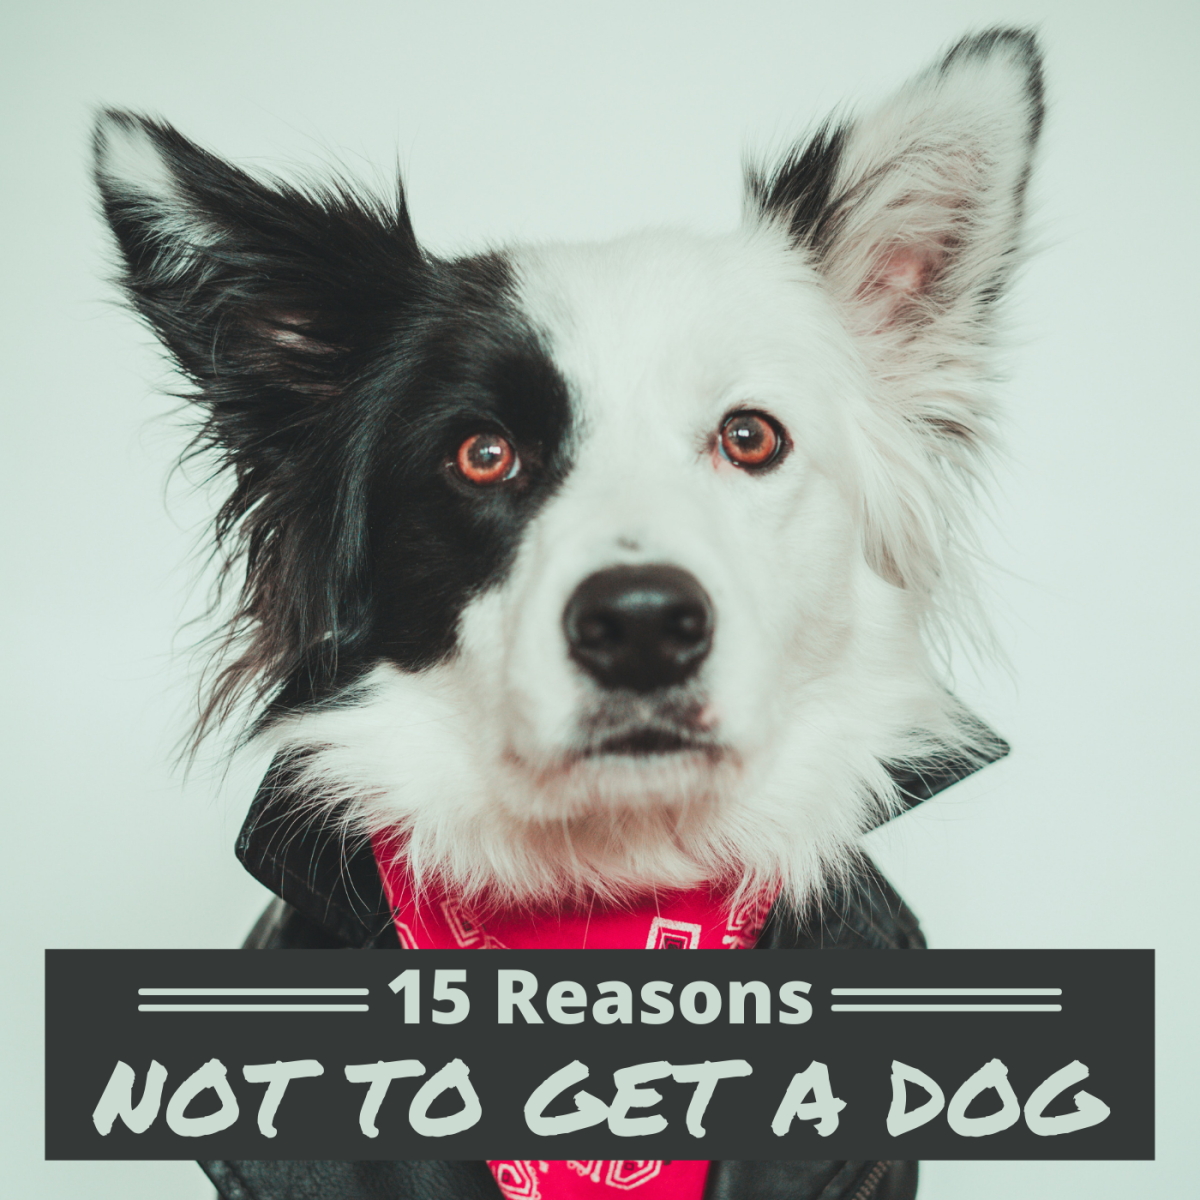 Dogs can make great pets, but there are a number of downsides and challenges that you should consider before deciding to bring one into your life.